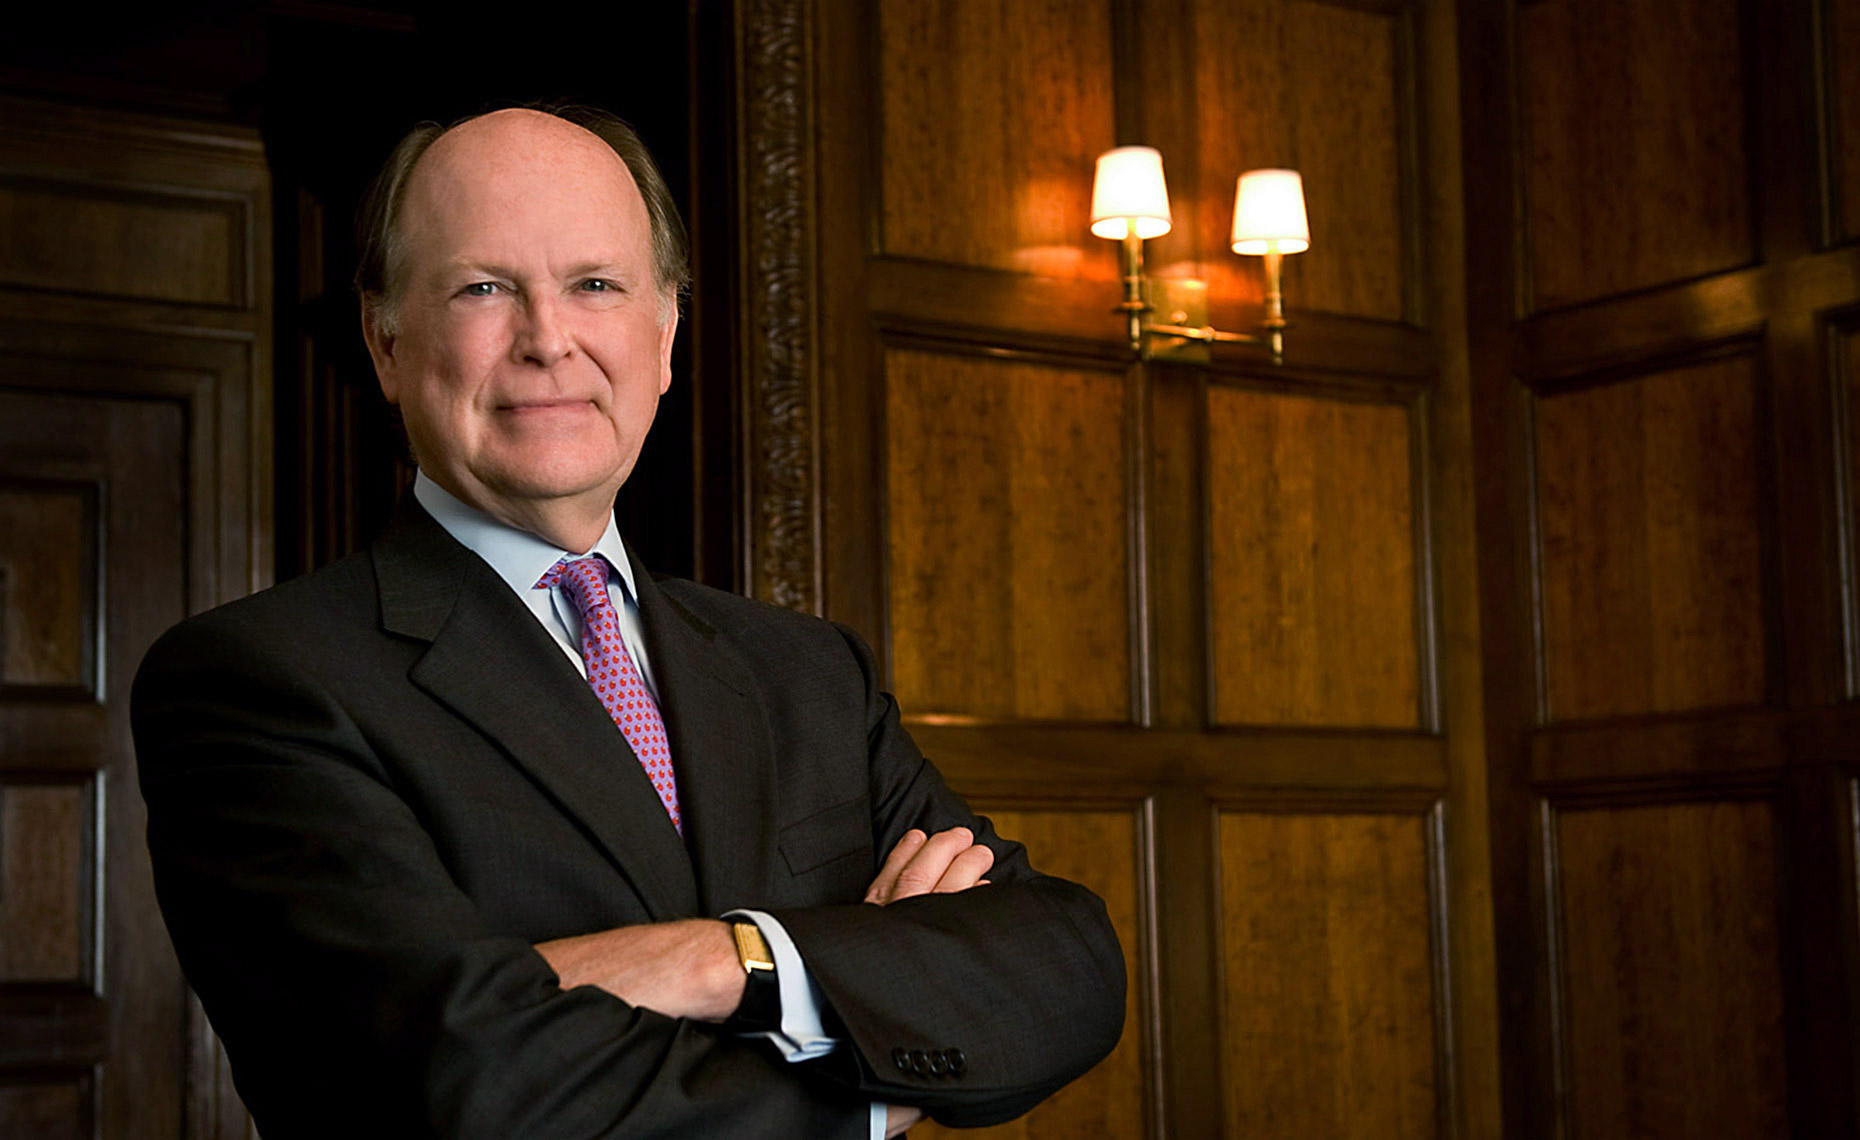 Charles Plosser at the New York City Federal Reserve